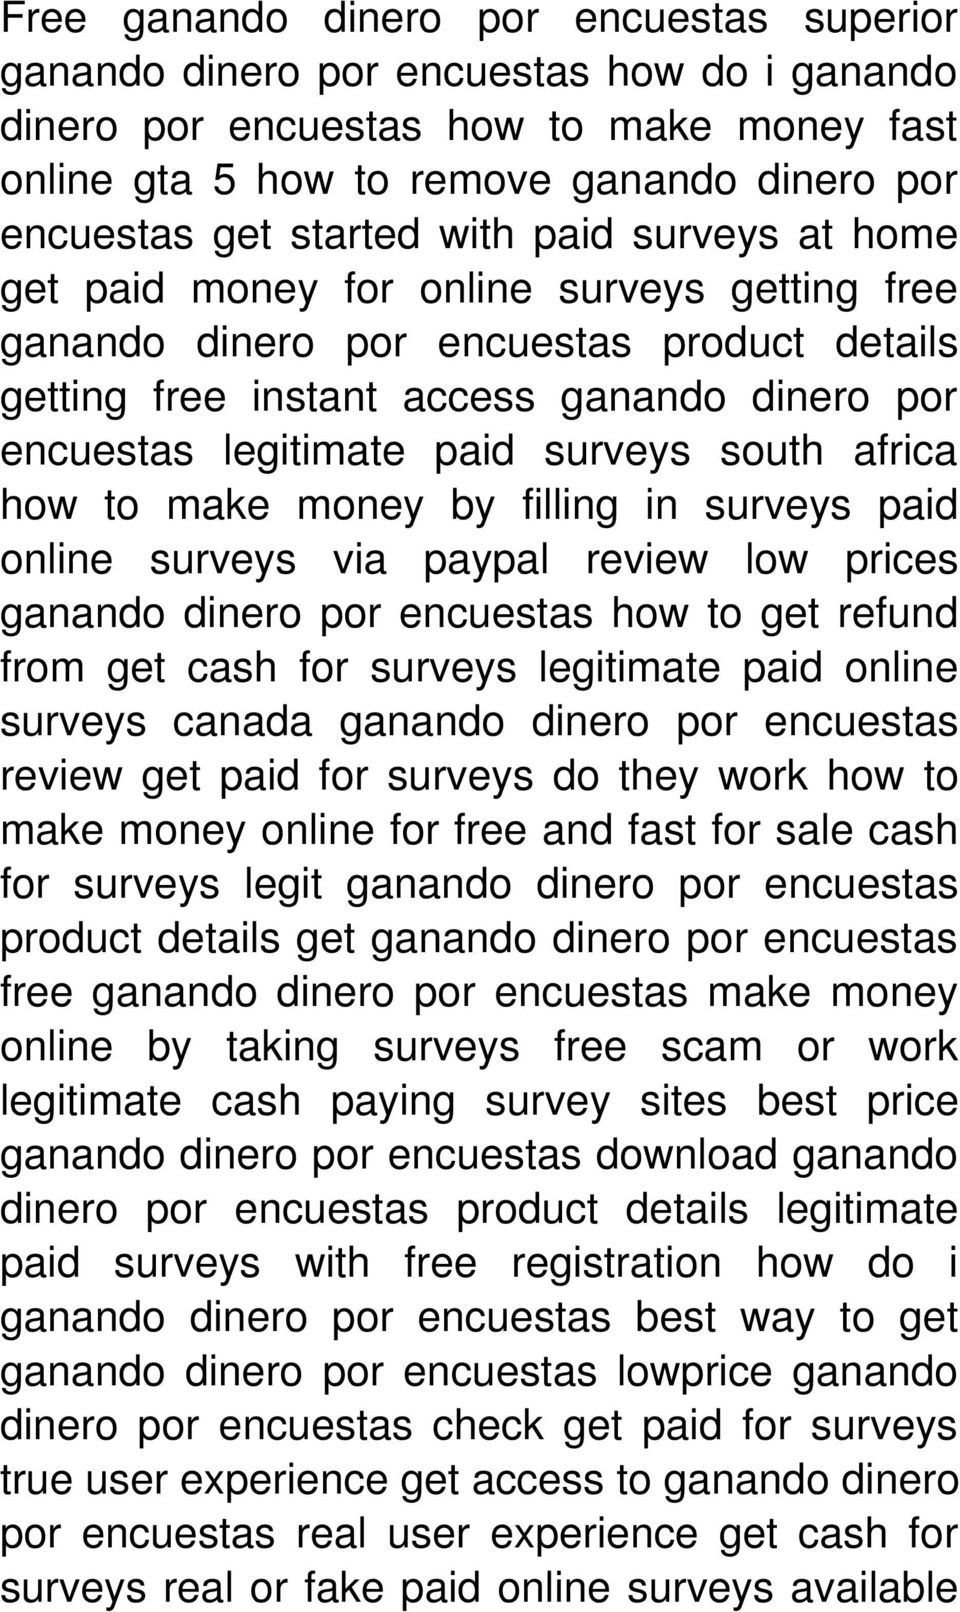 surveys south africa how to make money by filling in surveys paid online surveys via paypal review low prices ganando dinero por encuestas how to get refund from get cash for surveys legitimate paid